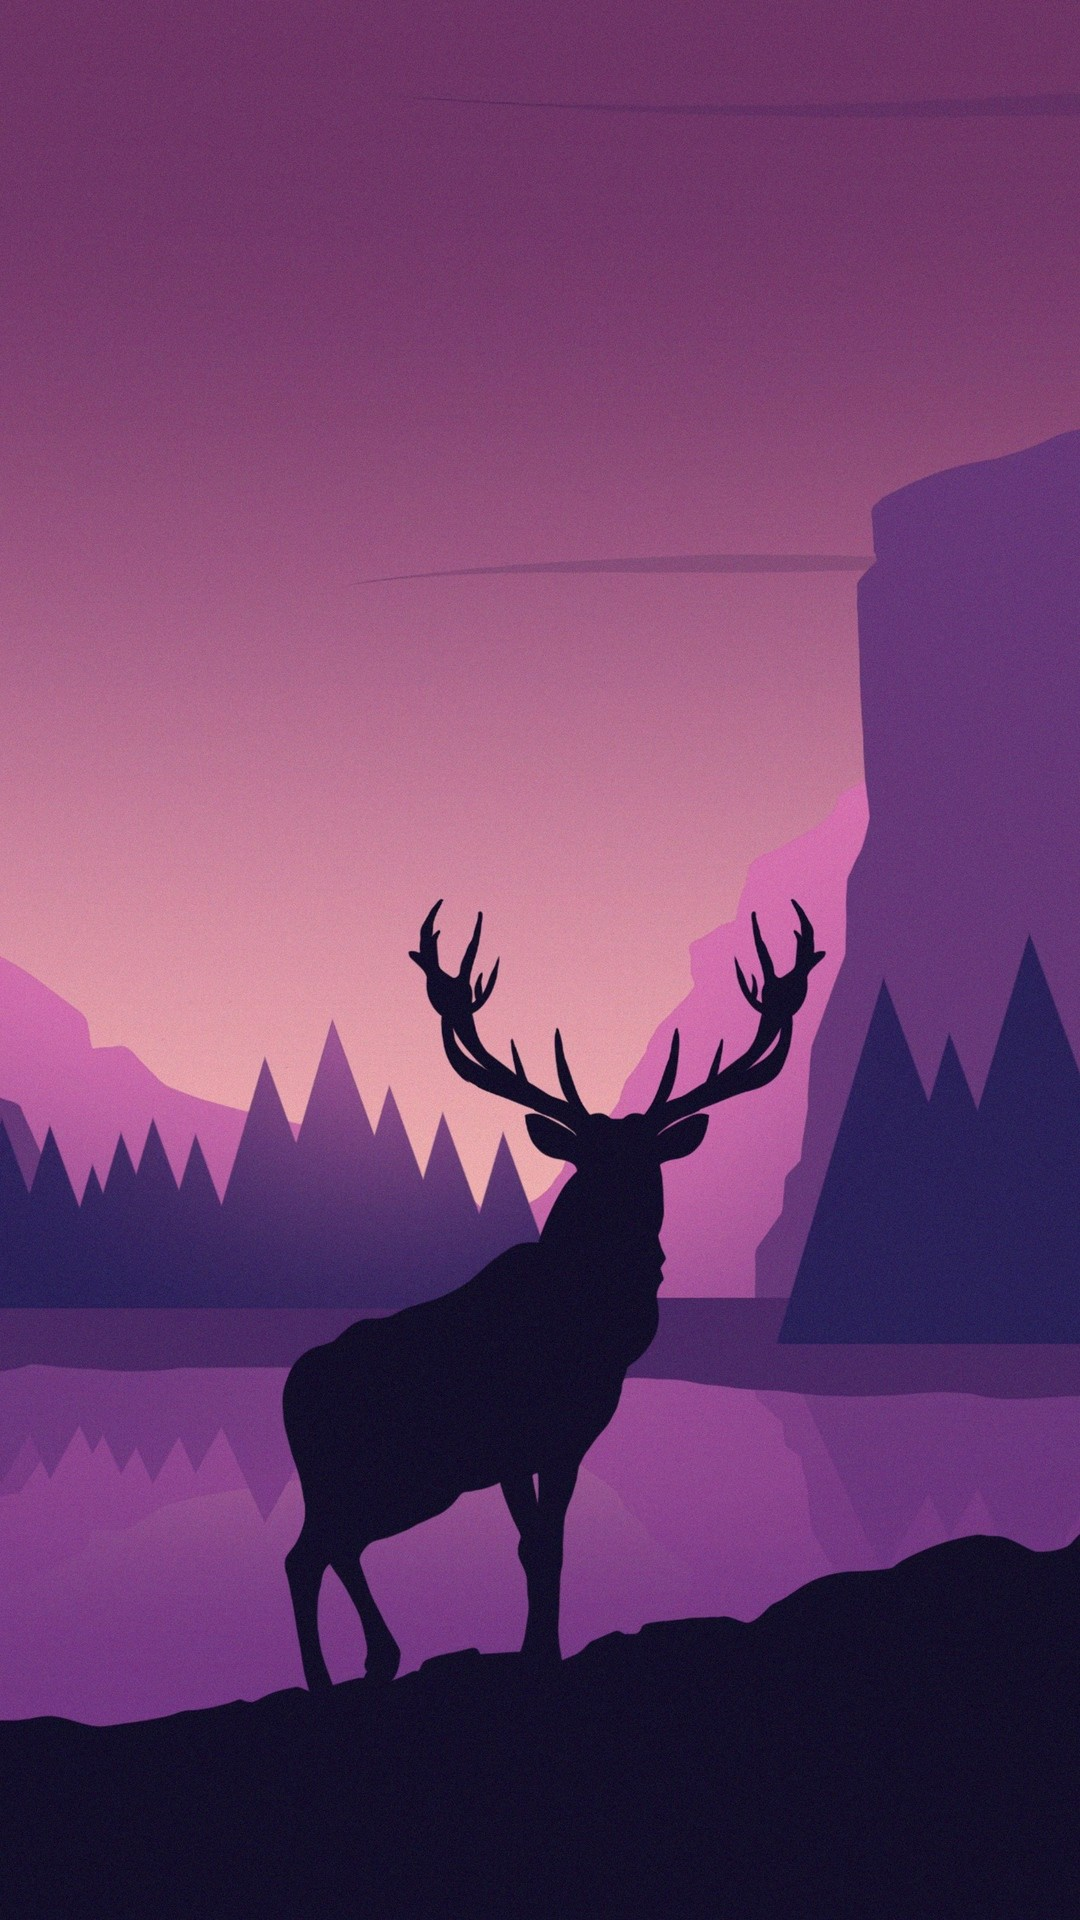 Free Deer, mountains, landscape phone wallpaper by titeanna